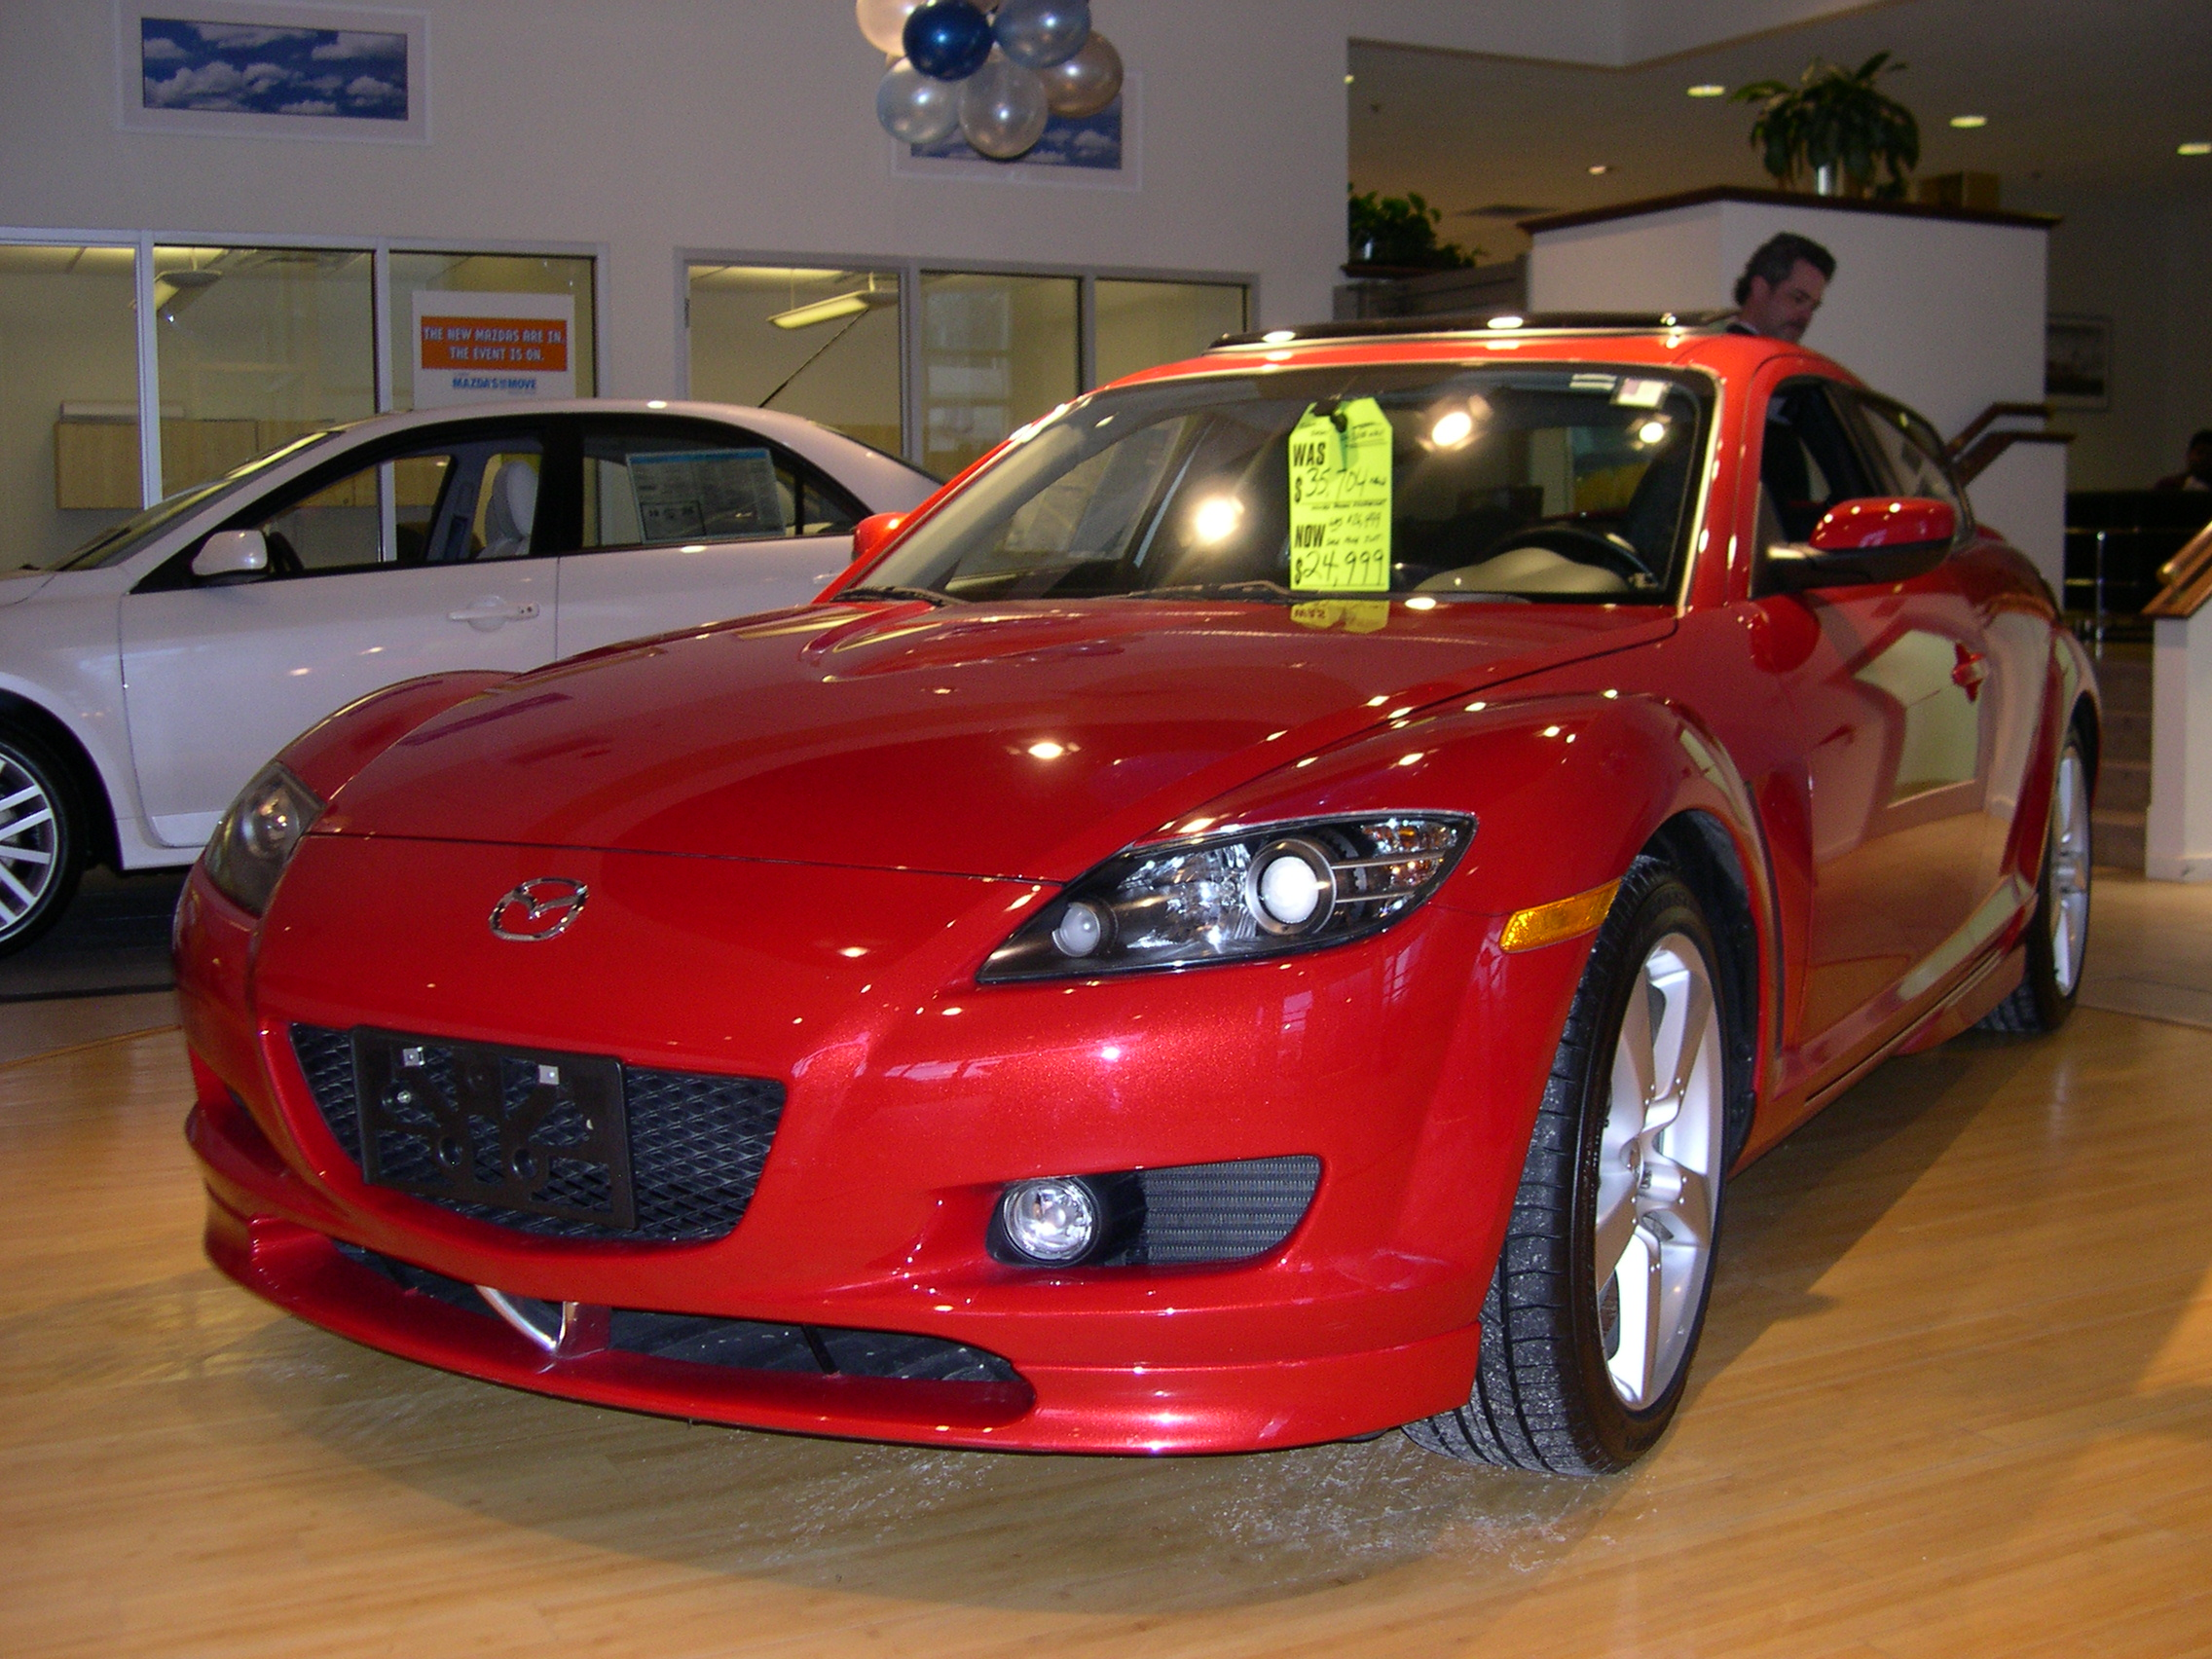 file 2005 mazda rx 8 front jpg wikimedia commons. Black Bedroom Furniture Sets. Home Design Ideas